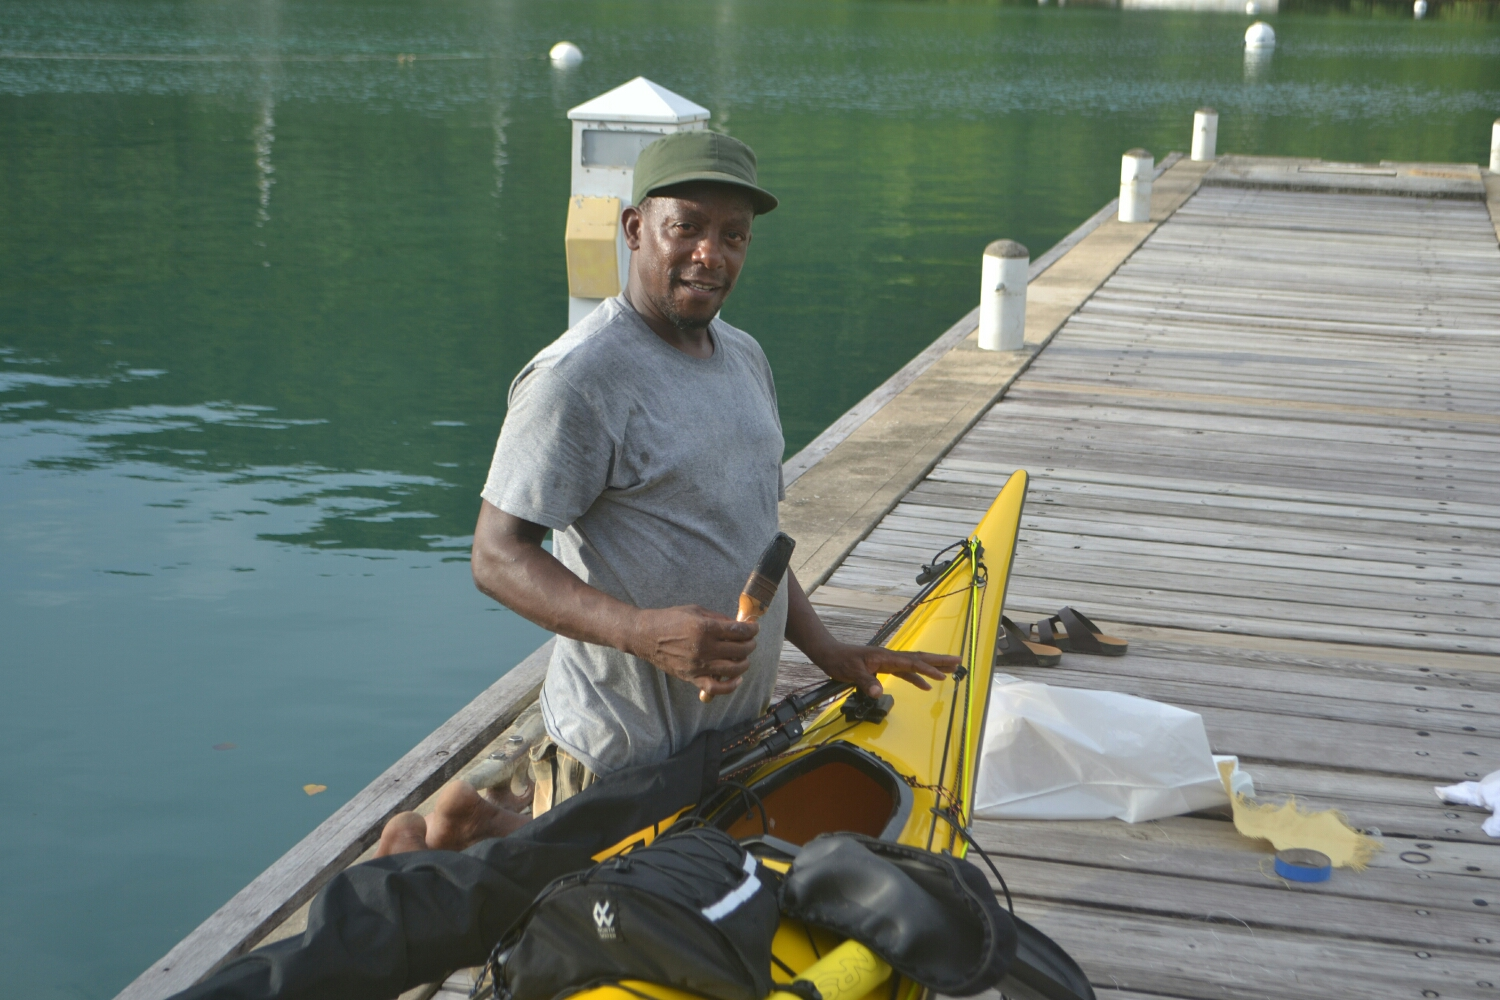 Imbert working on our kayak